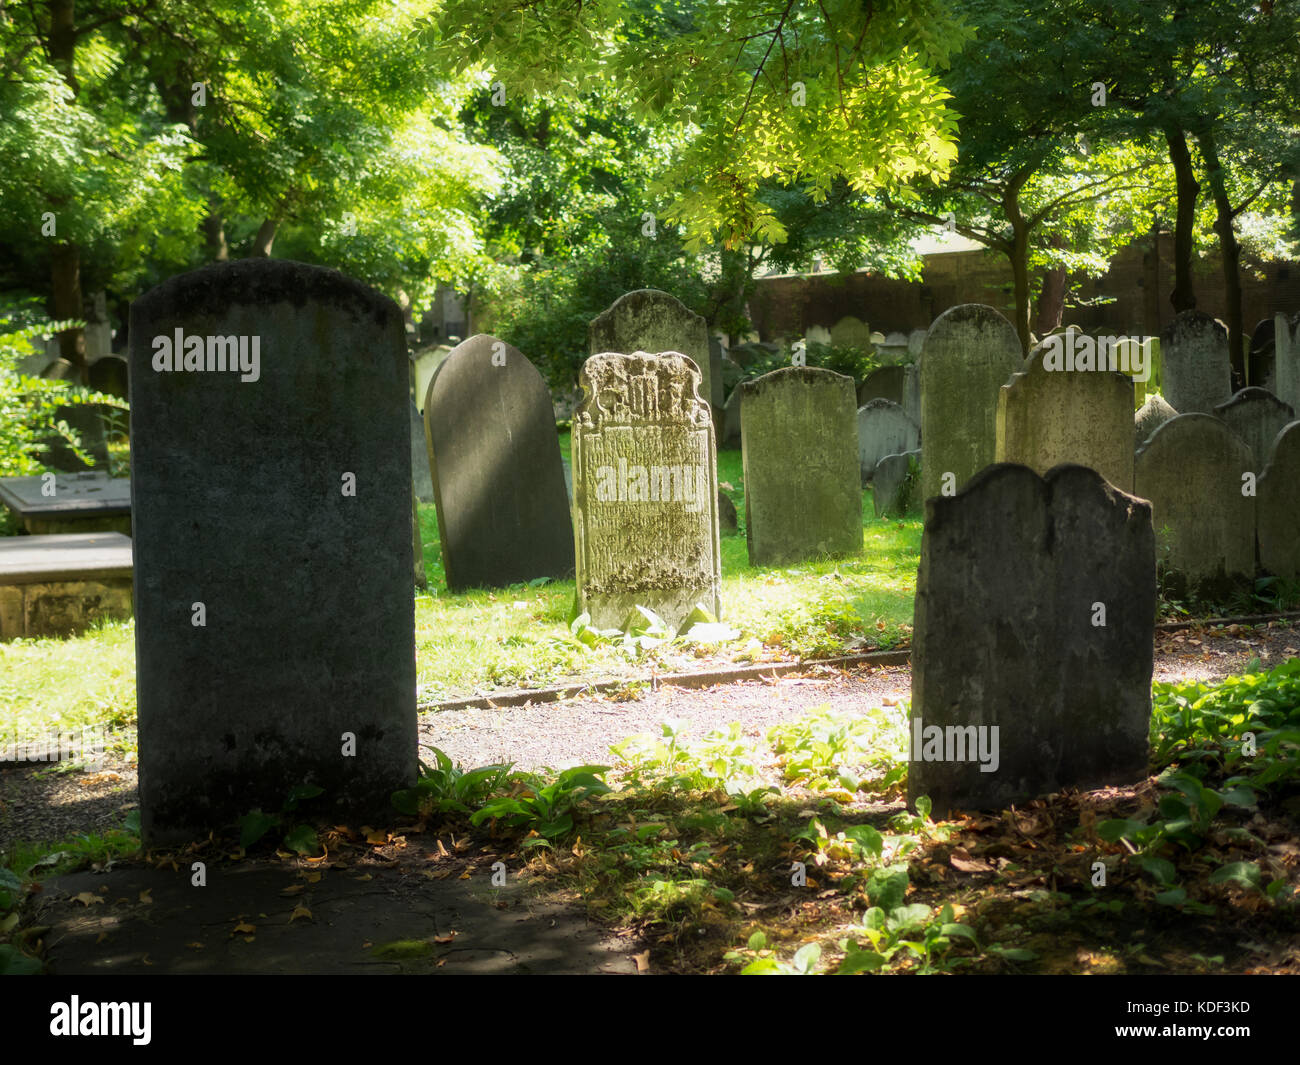 BUNHILL FIELDS BURIAL GROUND, LONDON, UK:  Gravestones in the Burial Ground which is now a Public Garden - Stock Image